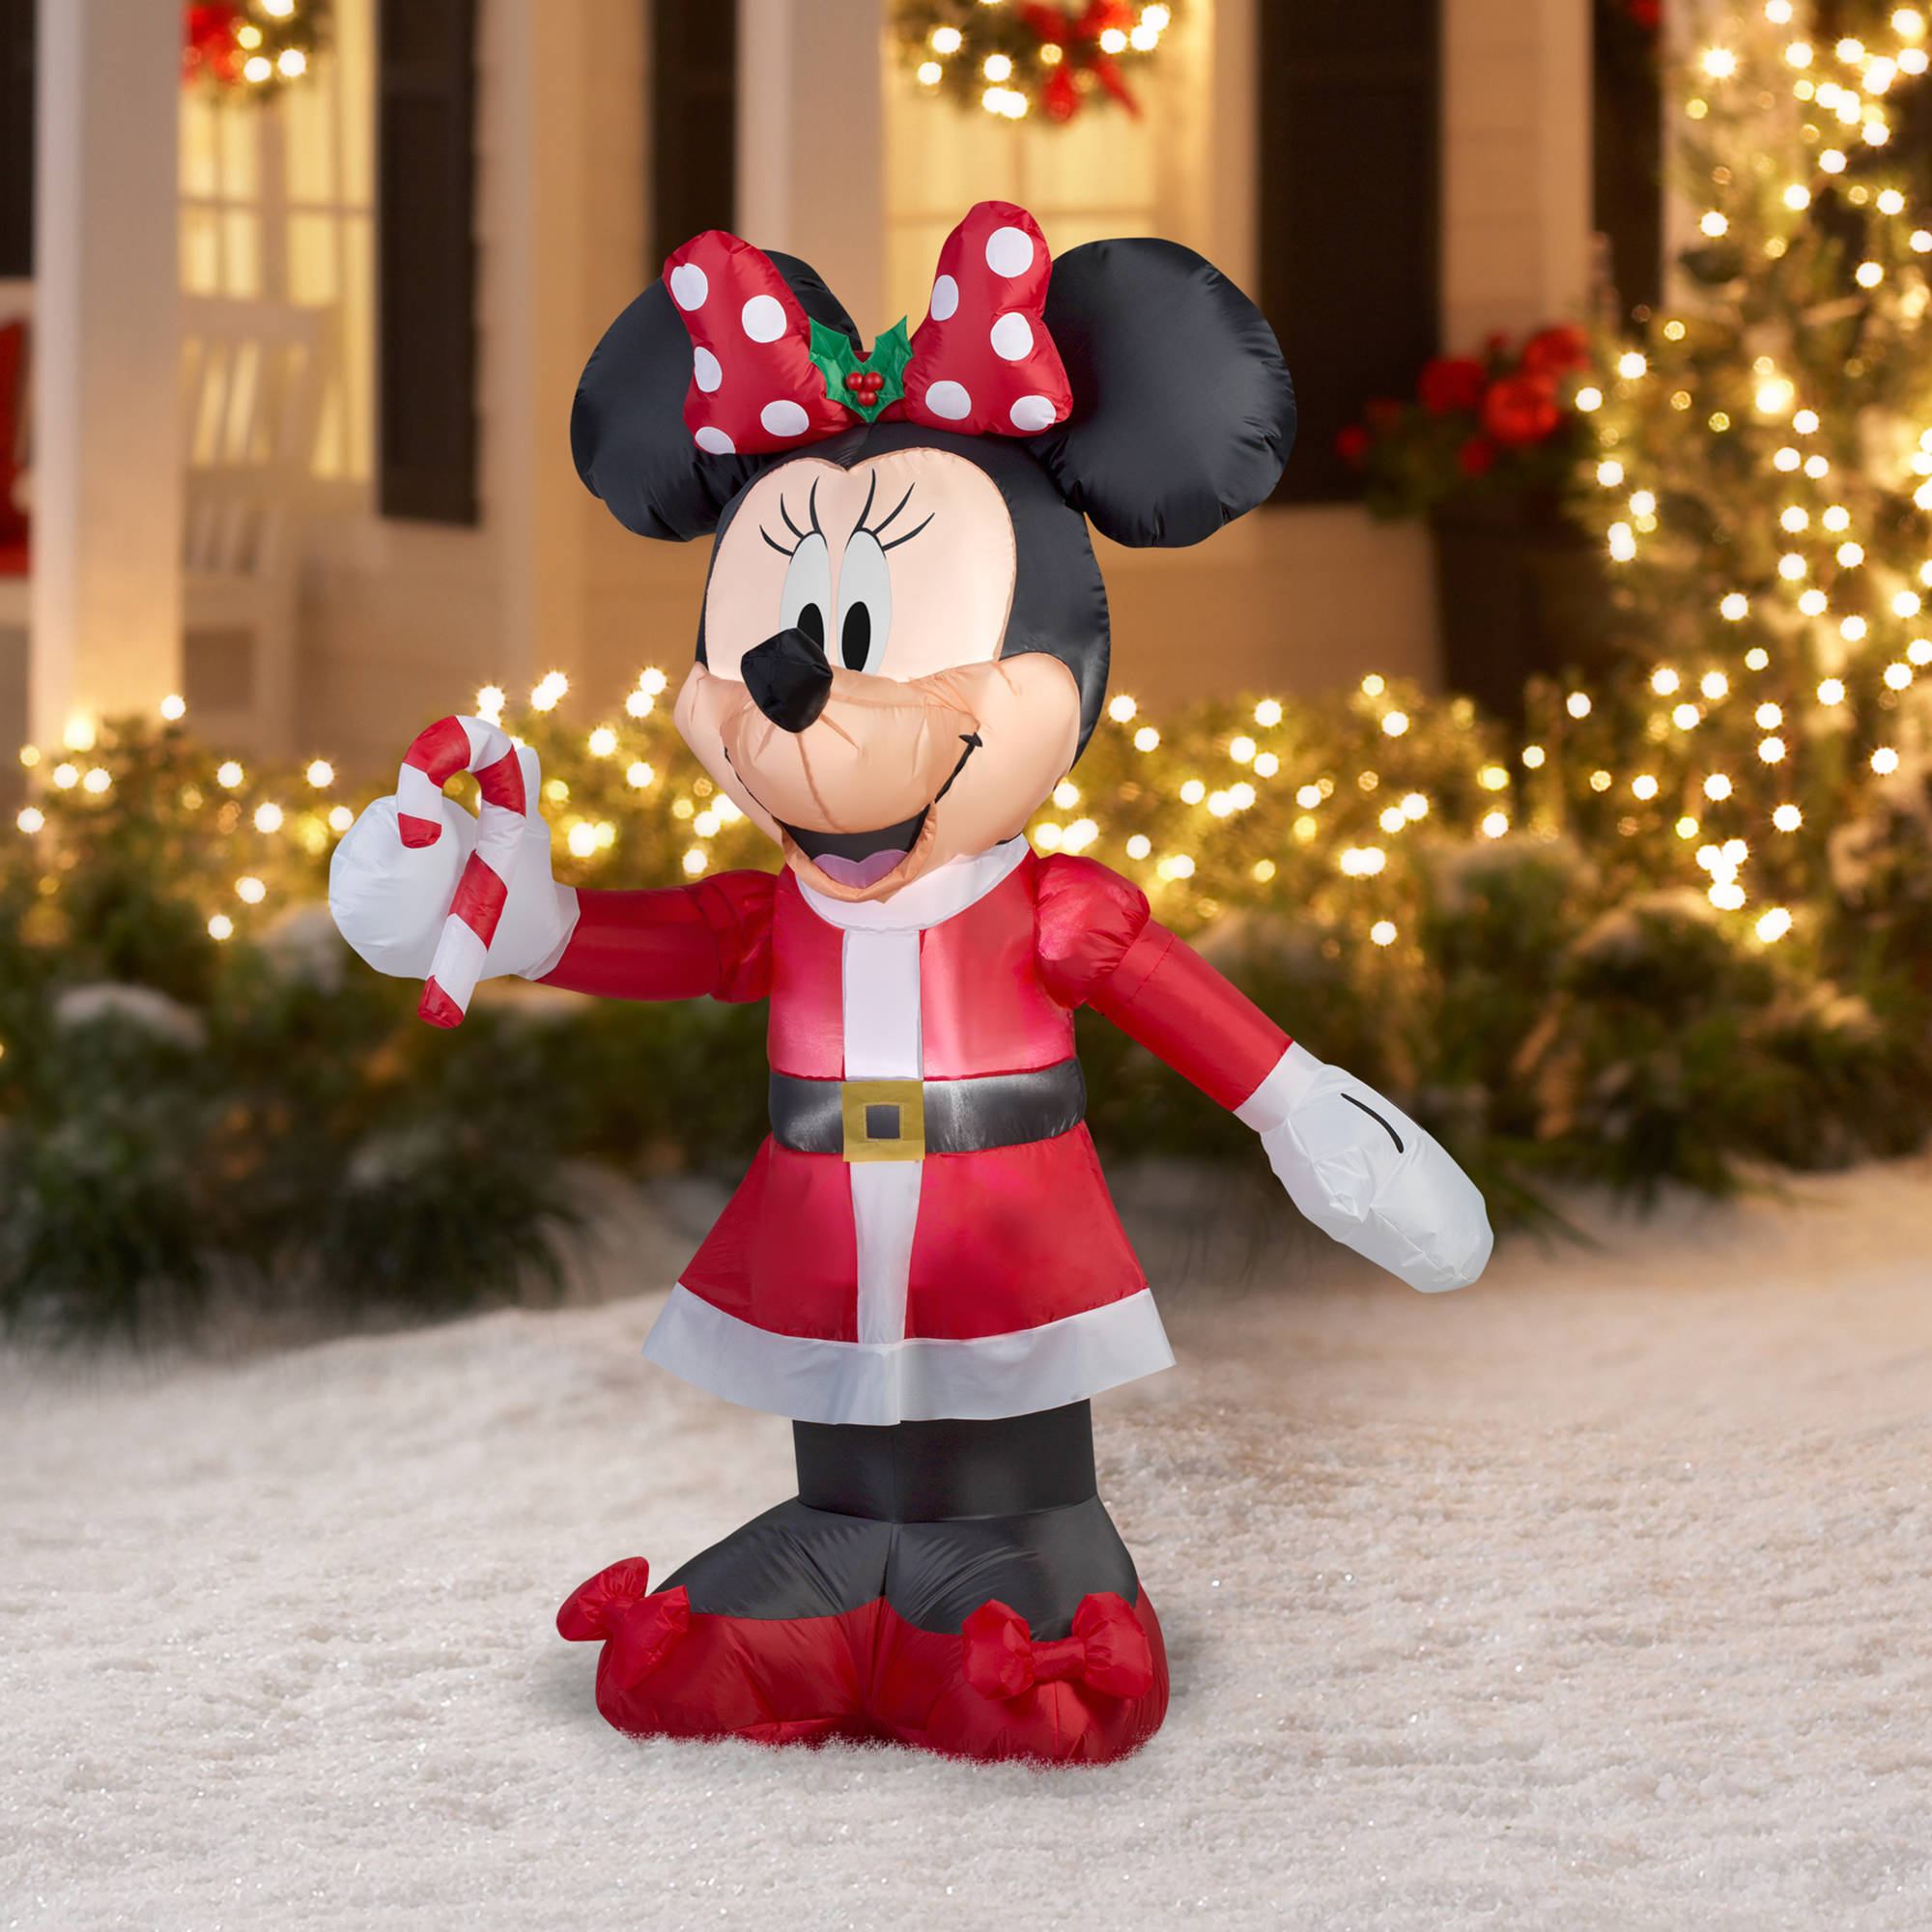 gemmy airblown christmas inflatables 5 disney minnie with candy cane walmartcom - Disney Inflatable Christmas Decorations